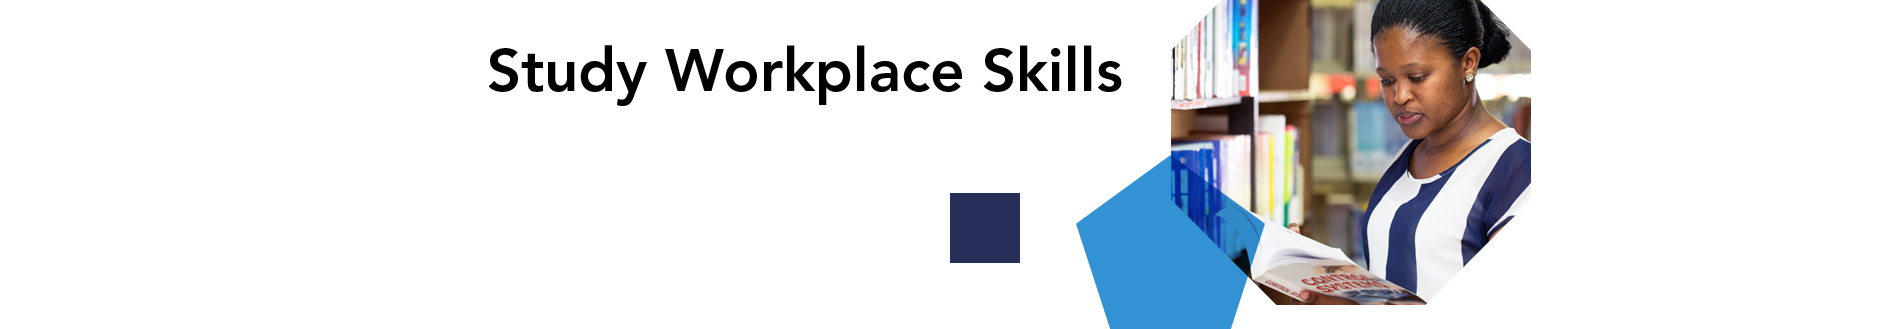 Study workplace skills banner